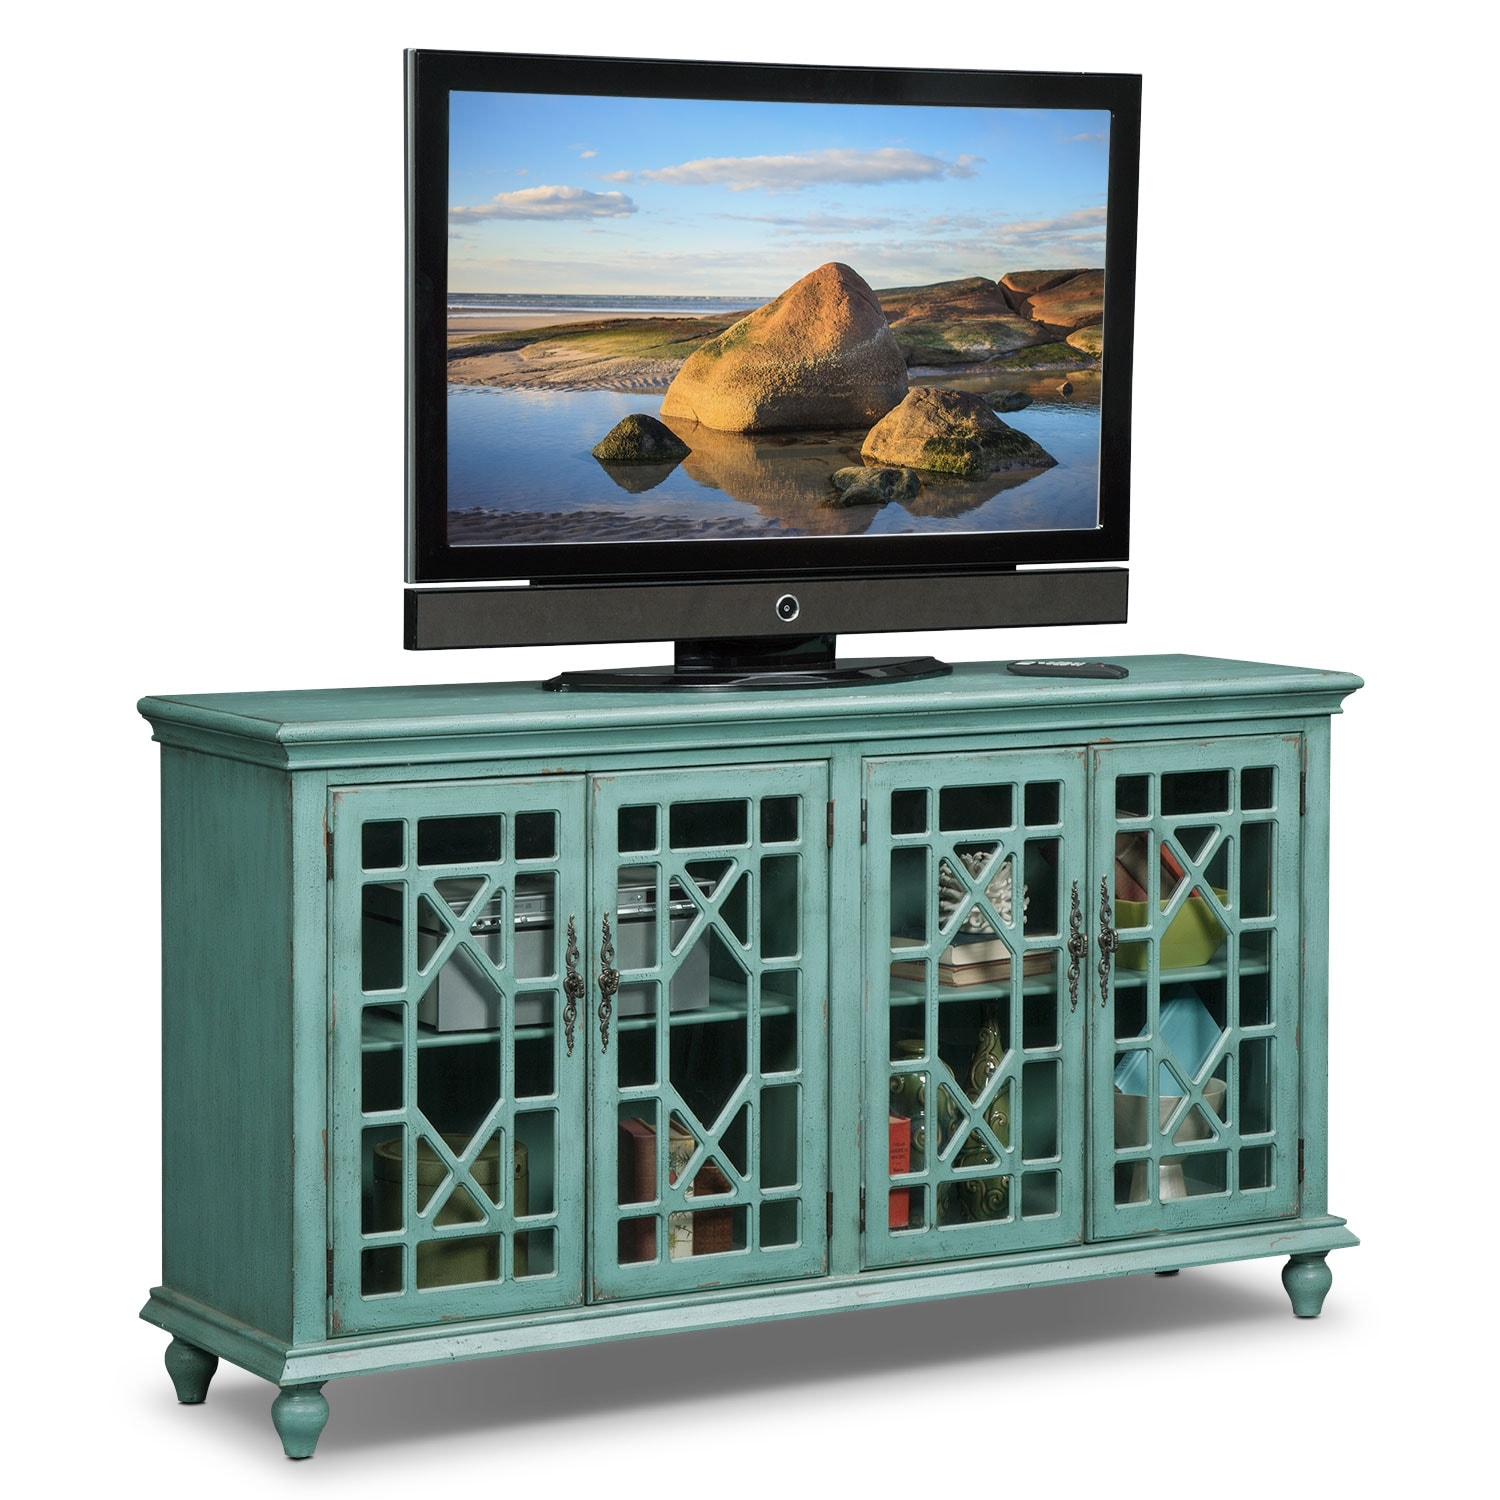 Grenoble Media Credenza - Teal